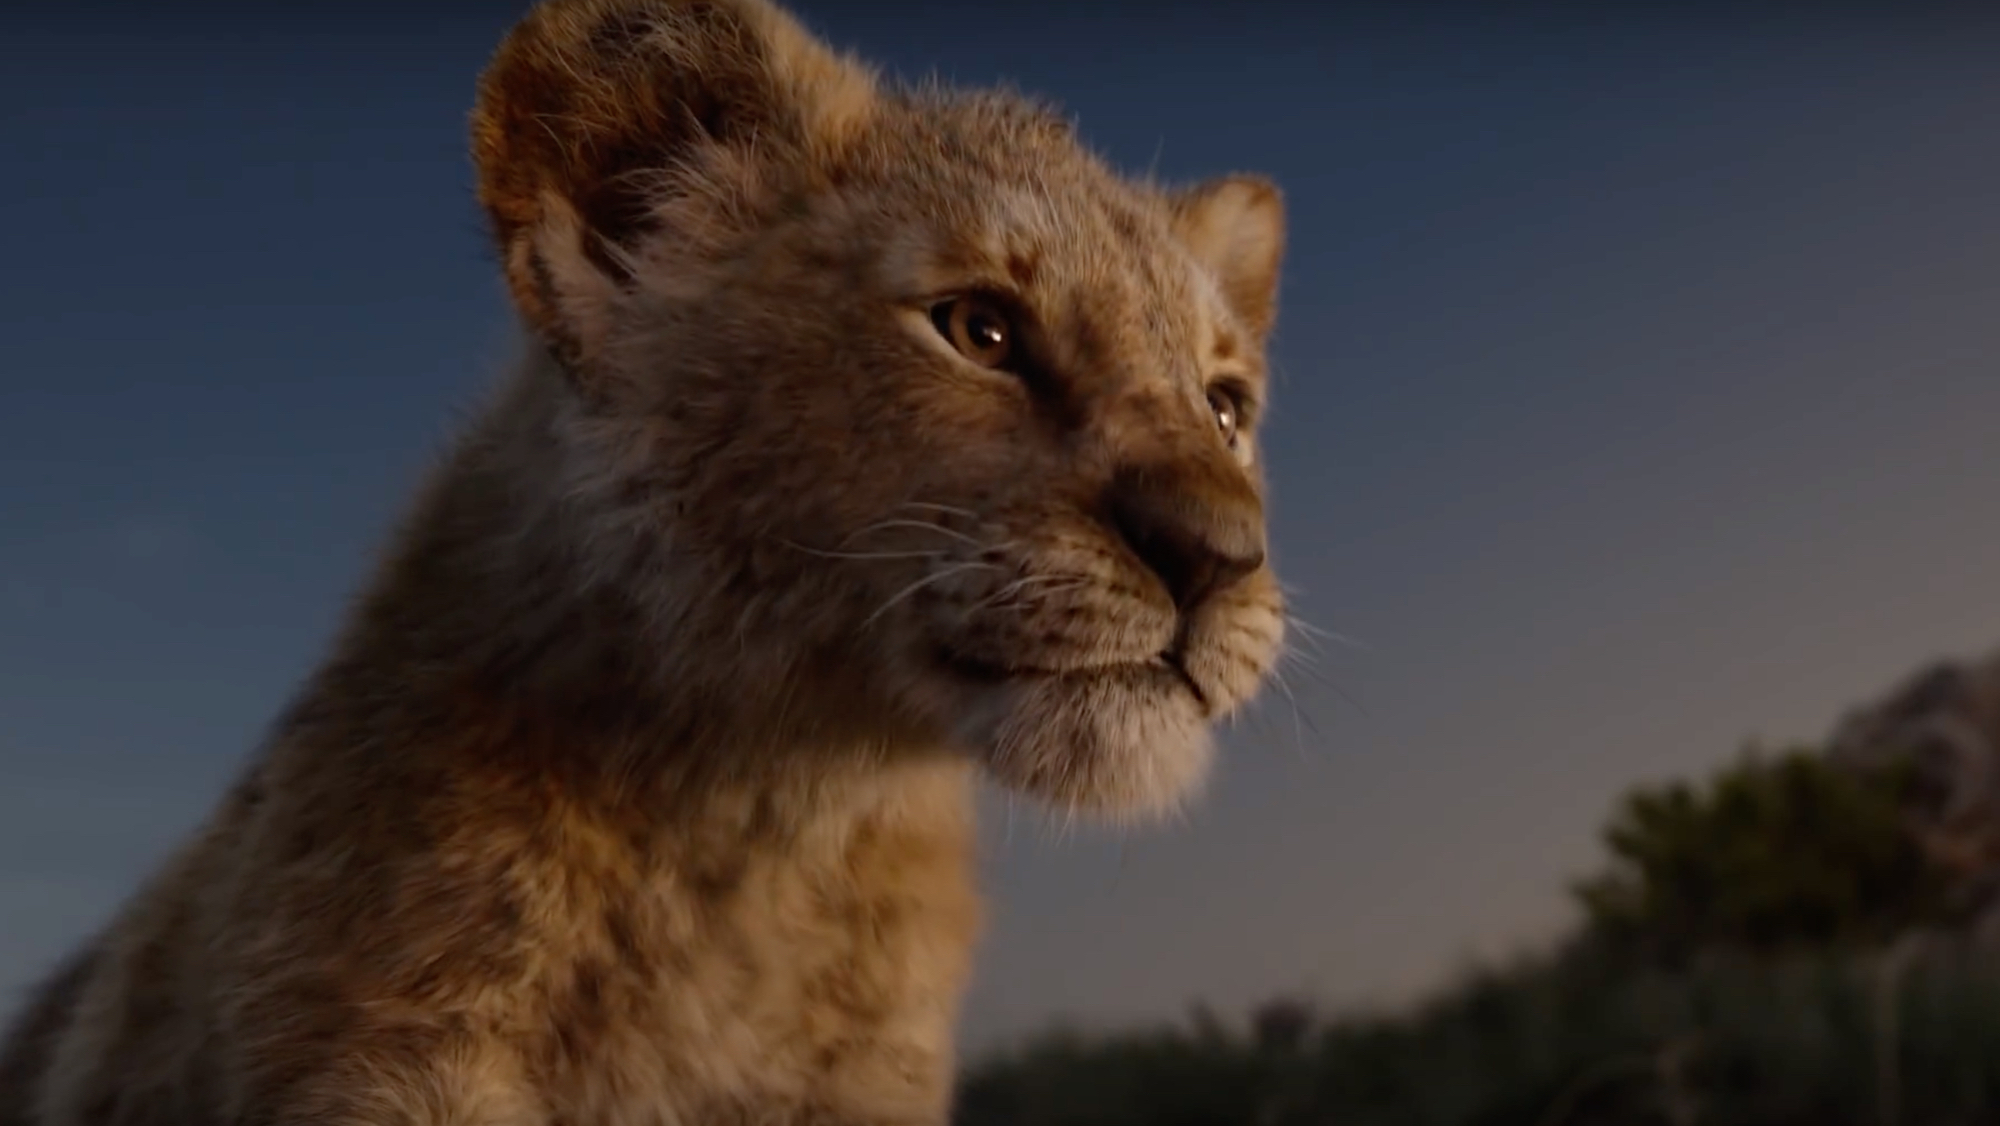 Wonderland film review The Lion King young Simba